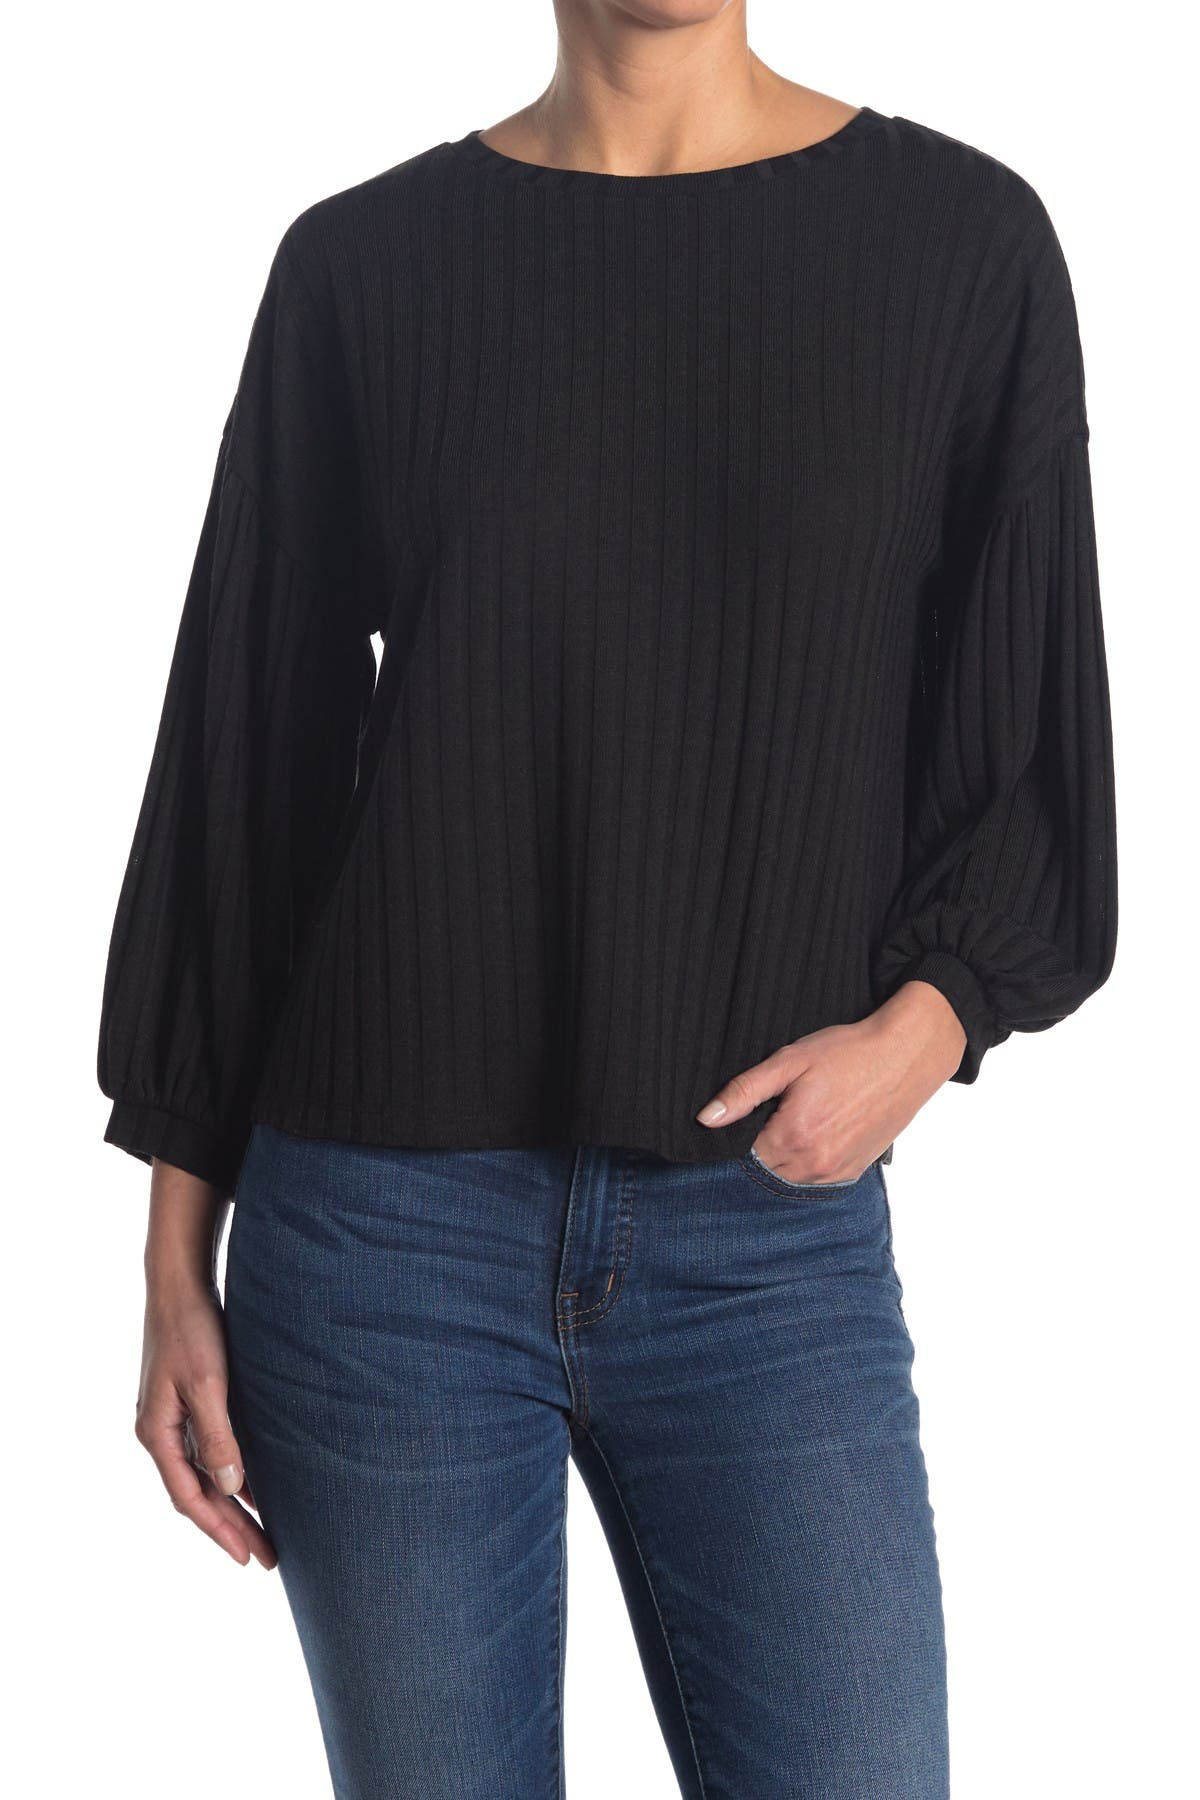 Image of Chenault Wide Rib Puff Sleeve Boxy Top